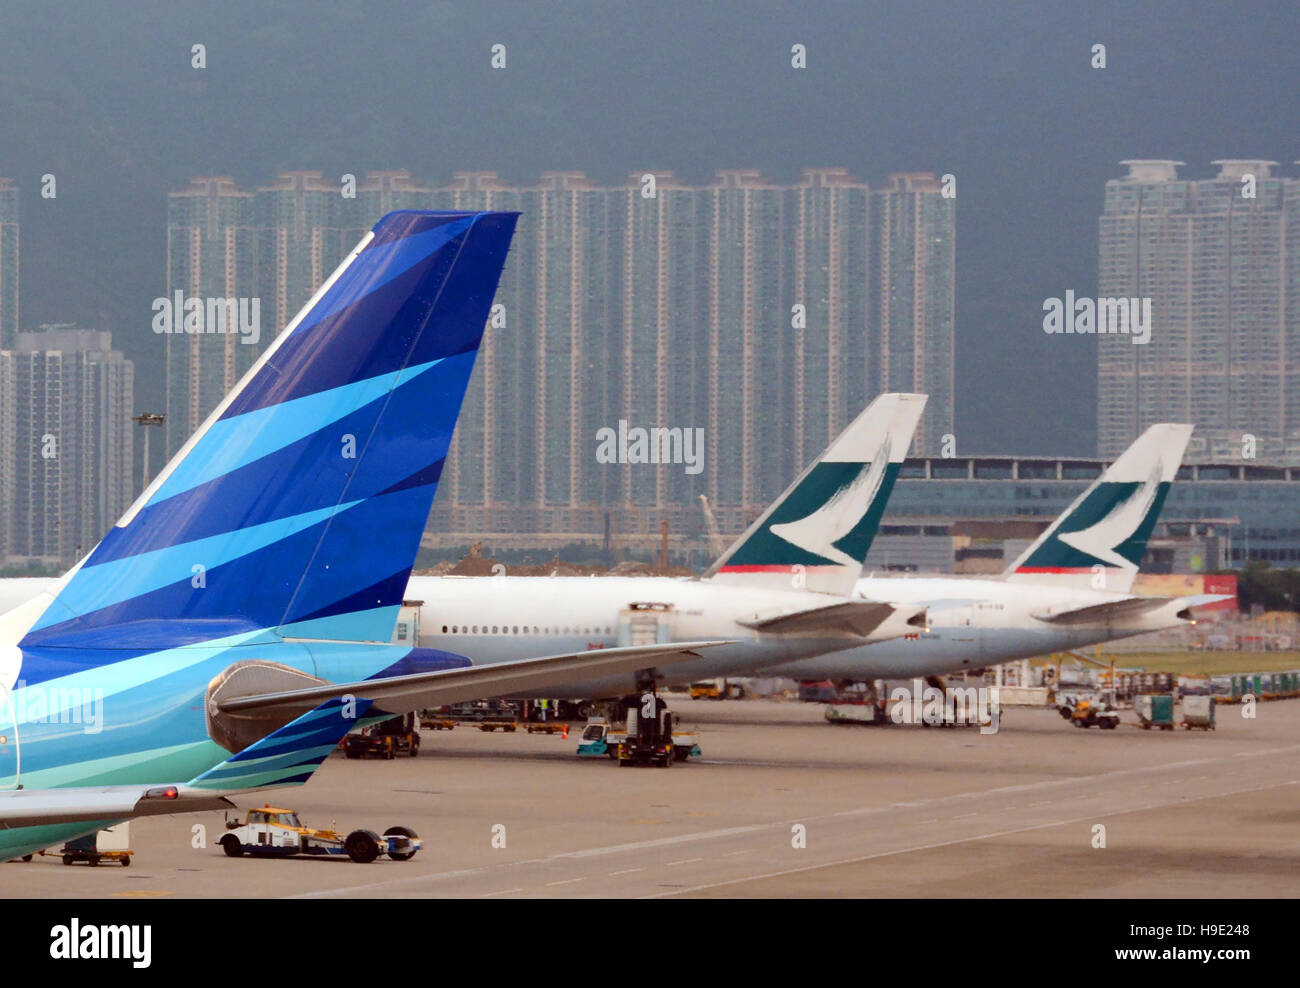 Garuda Indonesia Cathay Pacific planes in Hong Kong international airport China - Stock Image